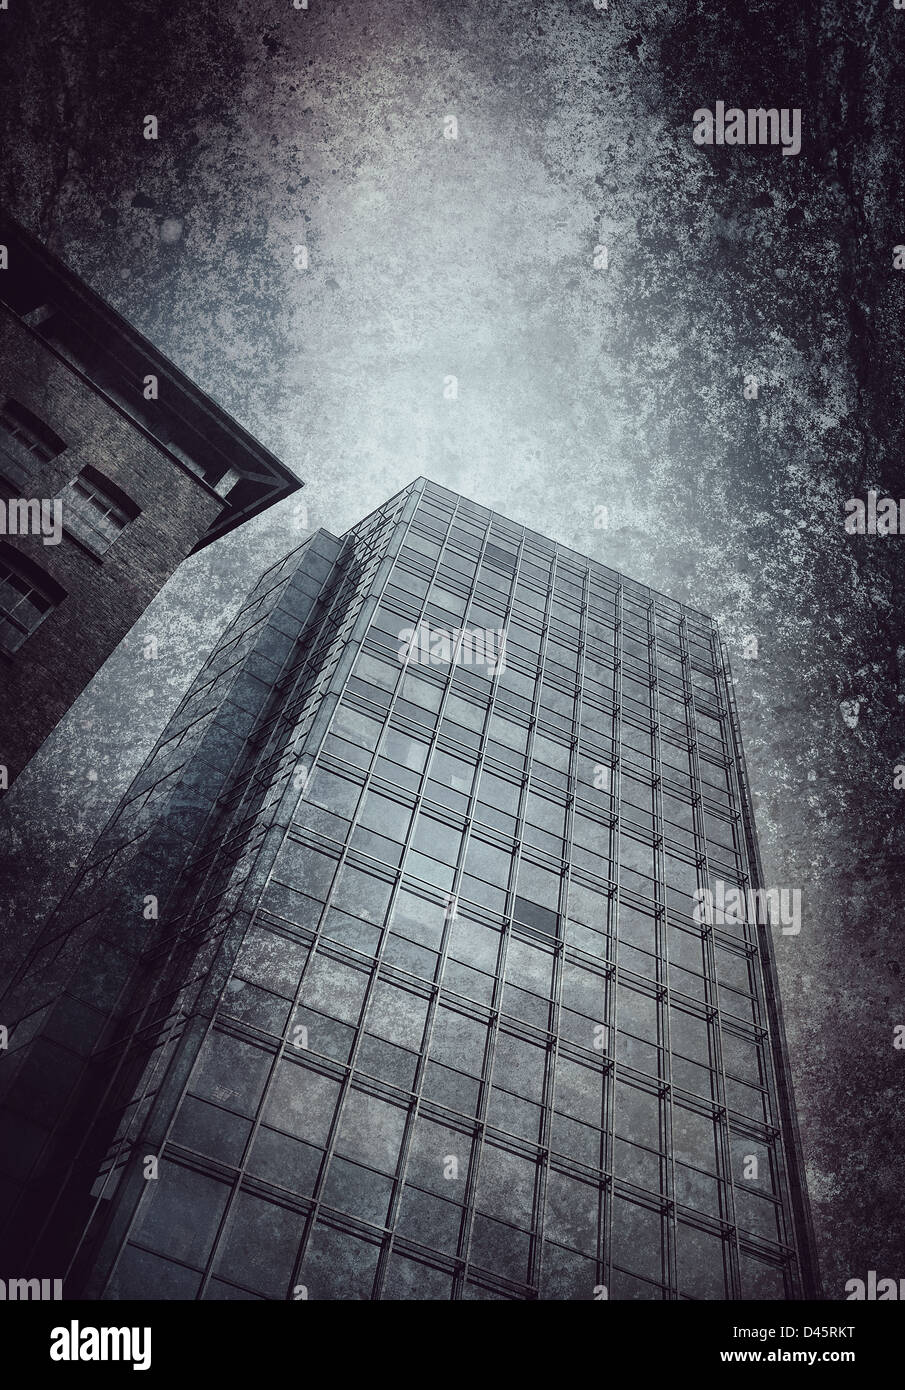 office block textured background - Stock Image